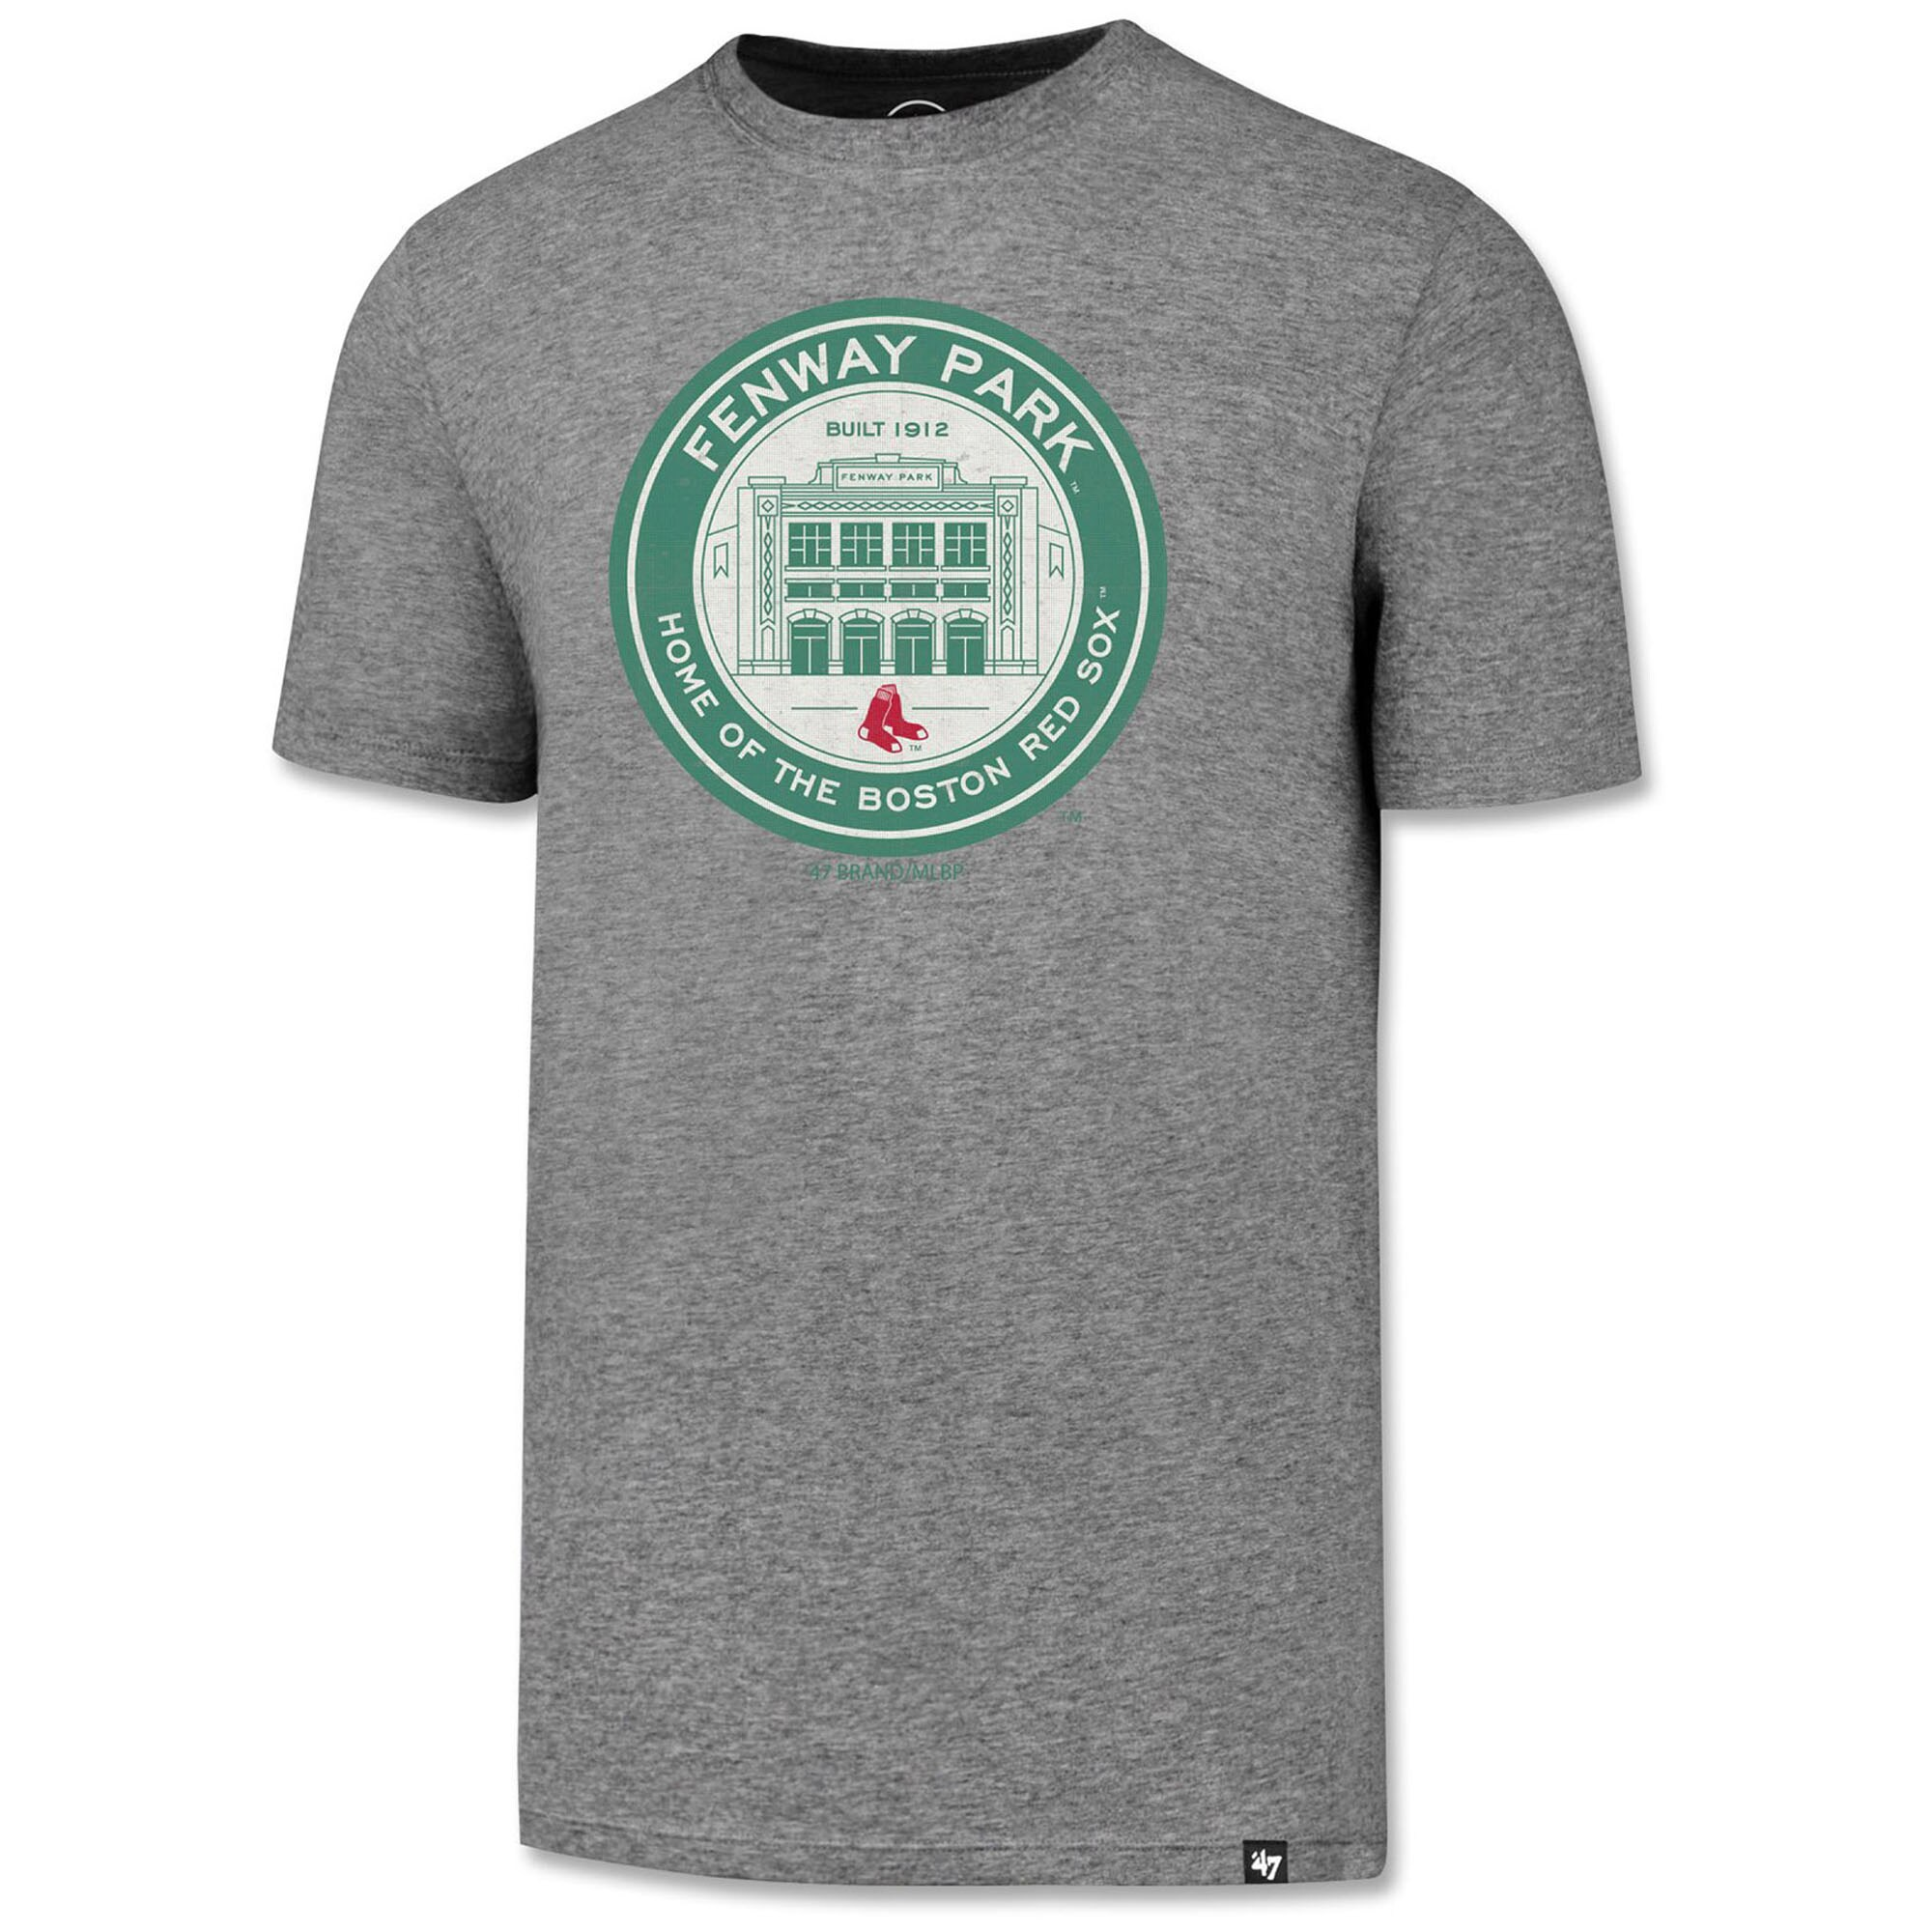 Boston Red Sox '47 Fenway Park Coin Logo Slate Grey T-Shirt - Heather Gray